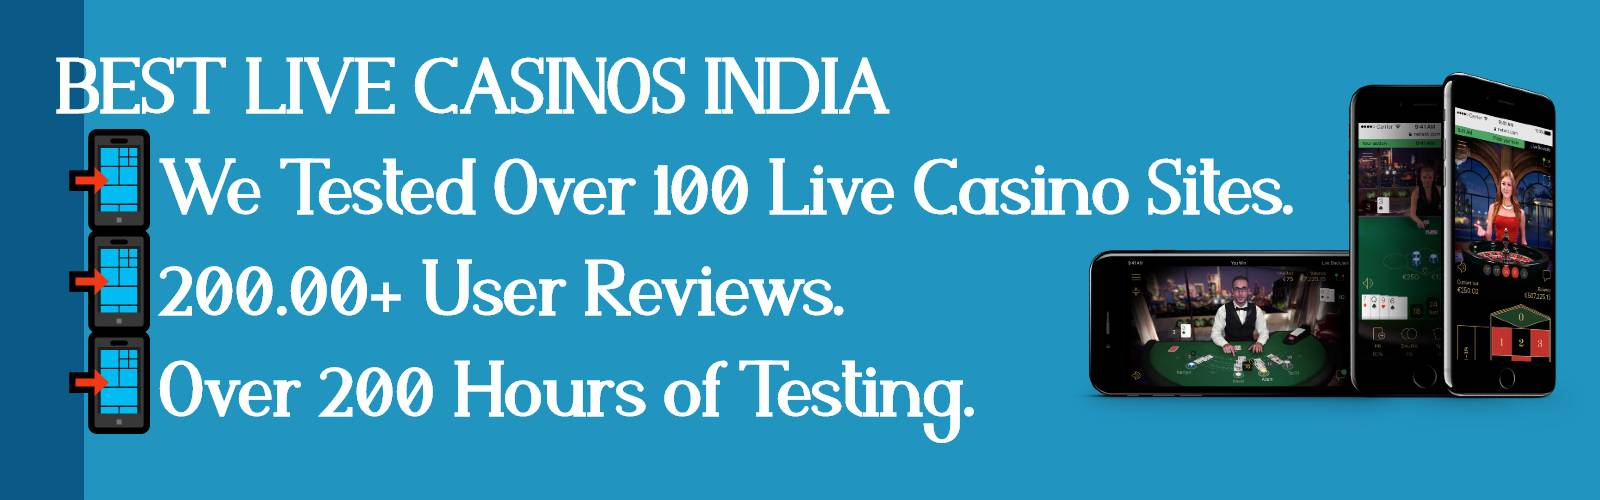 top-live-casino-sites-in-india